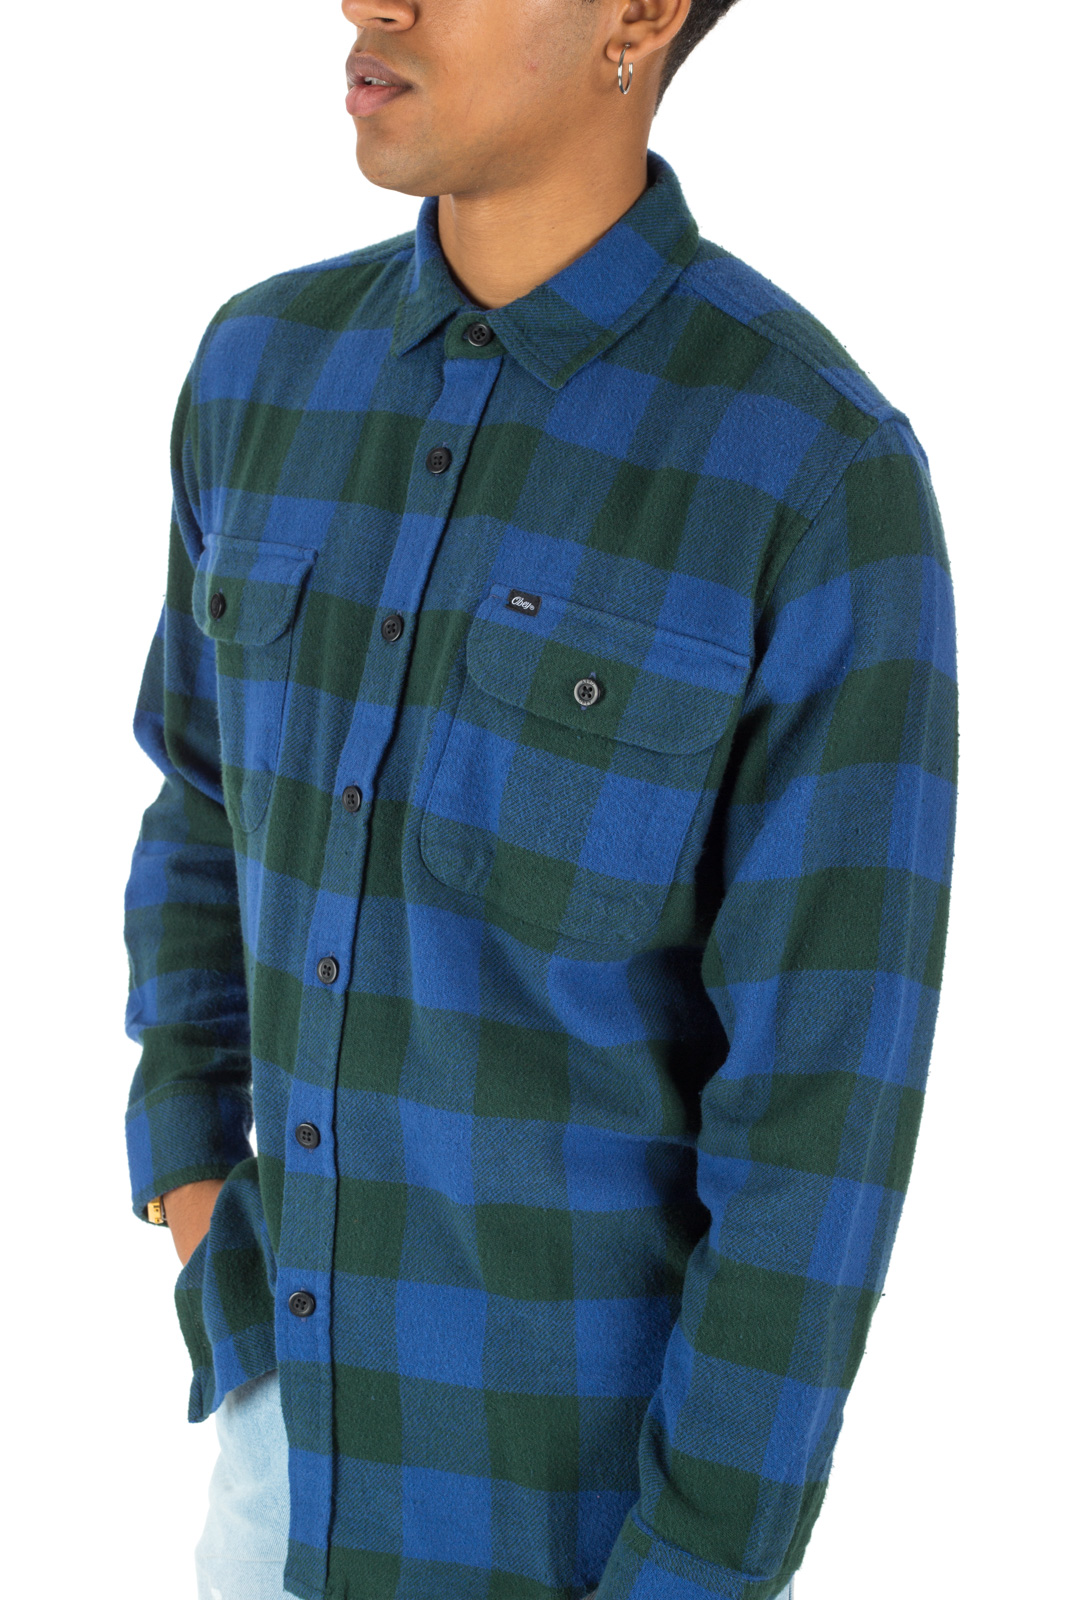 Obey - Trent check shirt